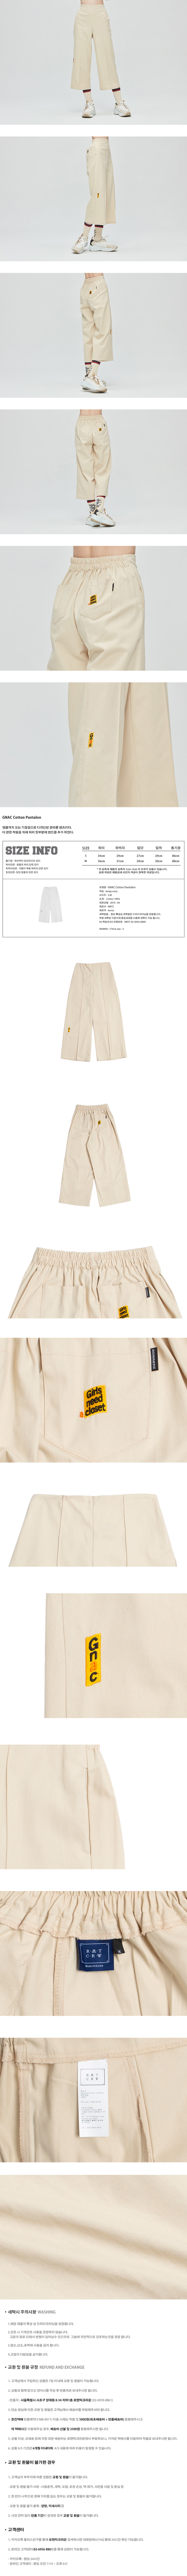 로맨틱크라운(ROMANTIC CROWN) GNAC Cotton Pantalon_Beige